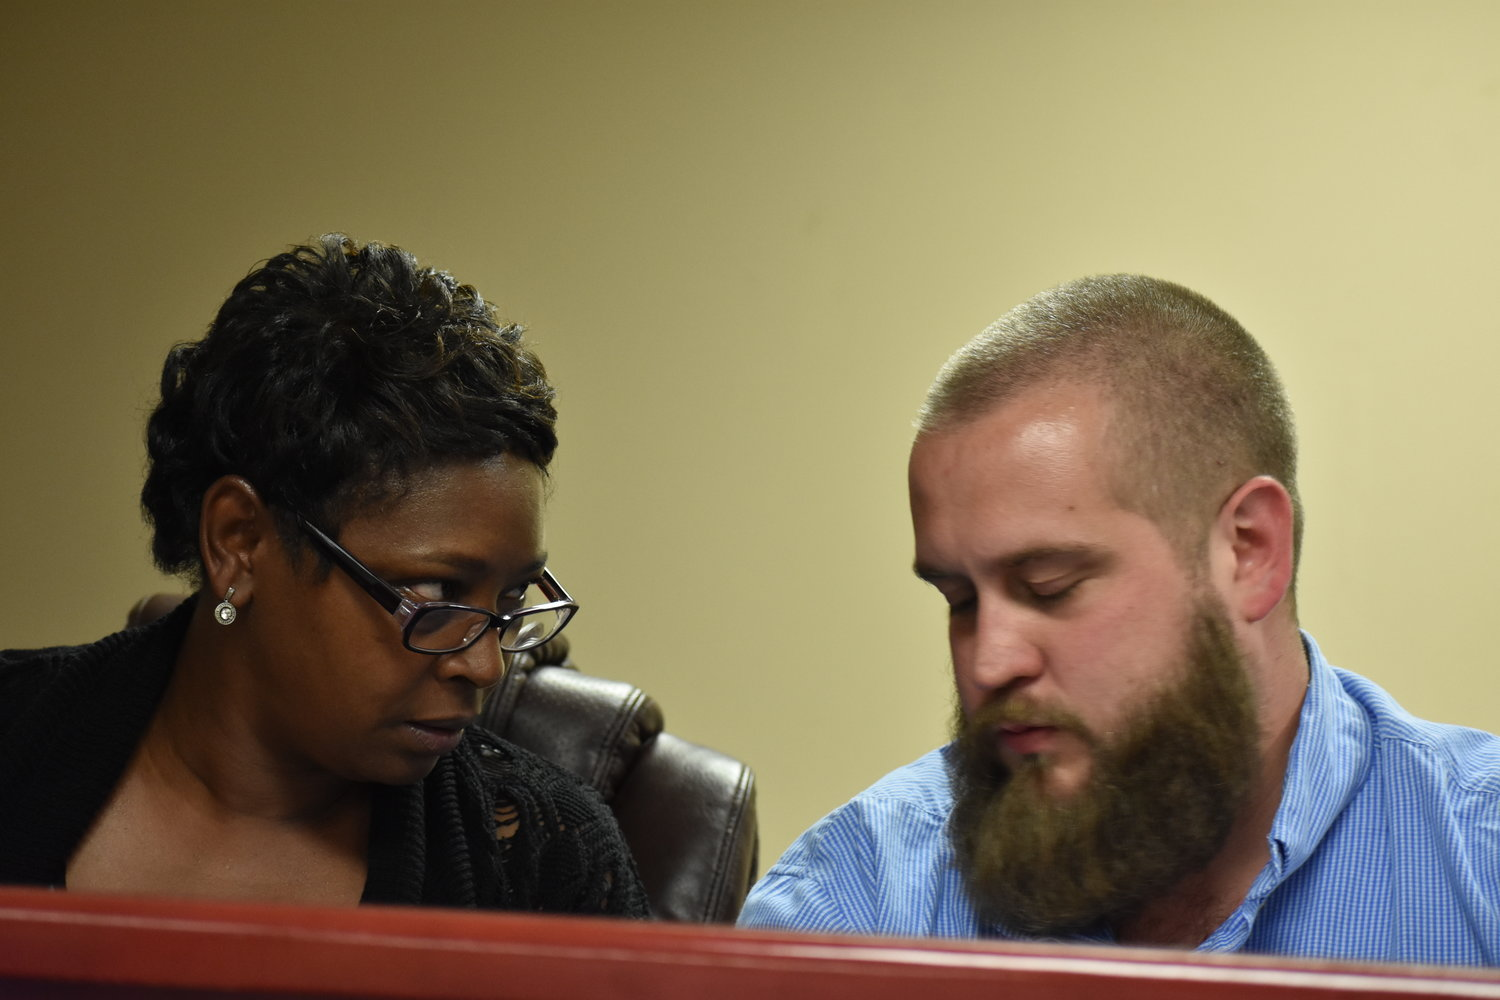 Councilwoman La'Tisha Oliver shares a word with Councilman Jake Williams during Tuesday's Parrish City Council meeting. The council picked Oliver to be the new mayor in the wake of Mayor Heather Hall's resignation.